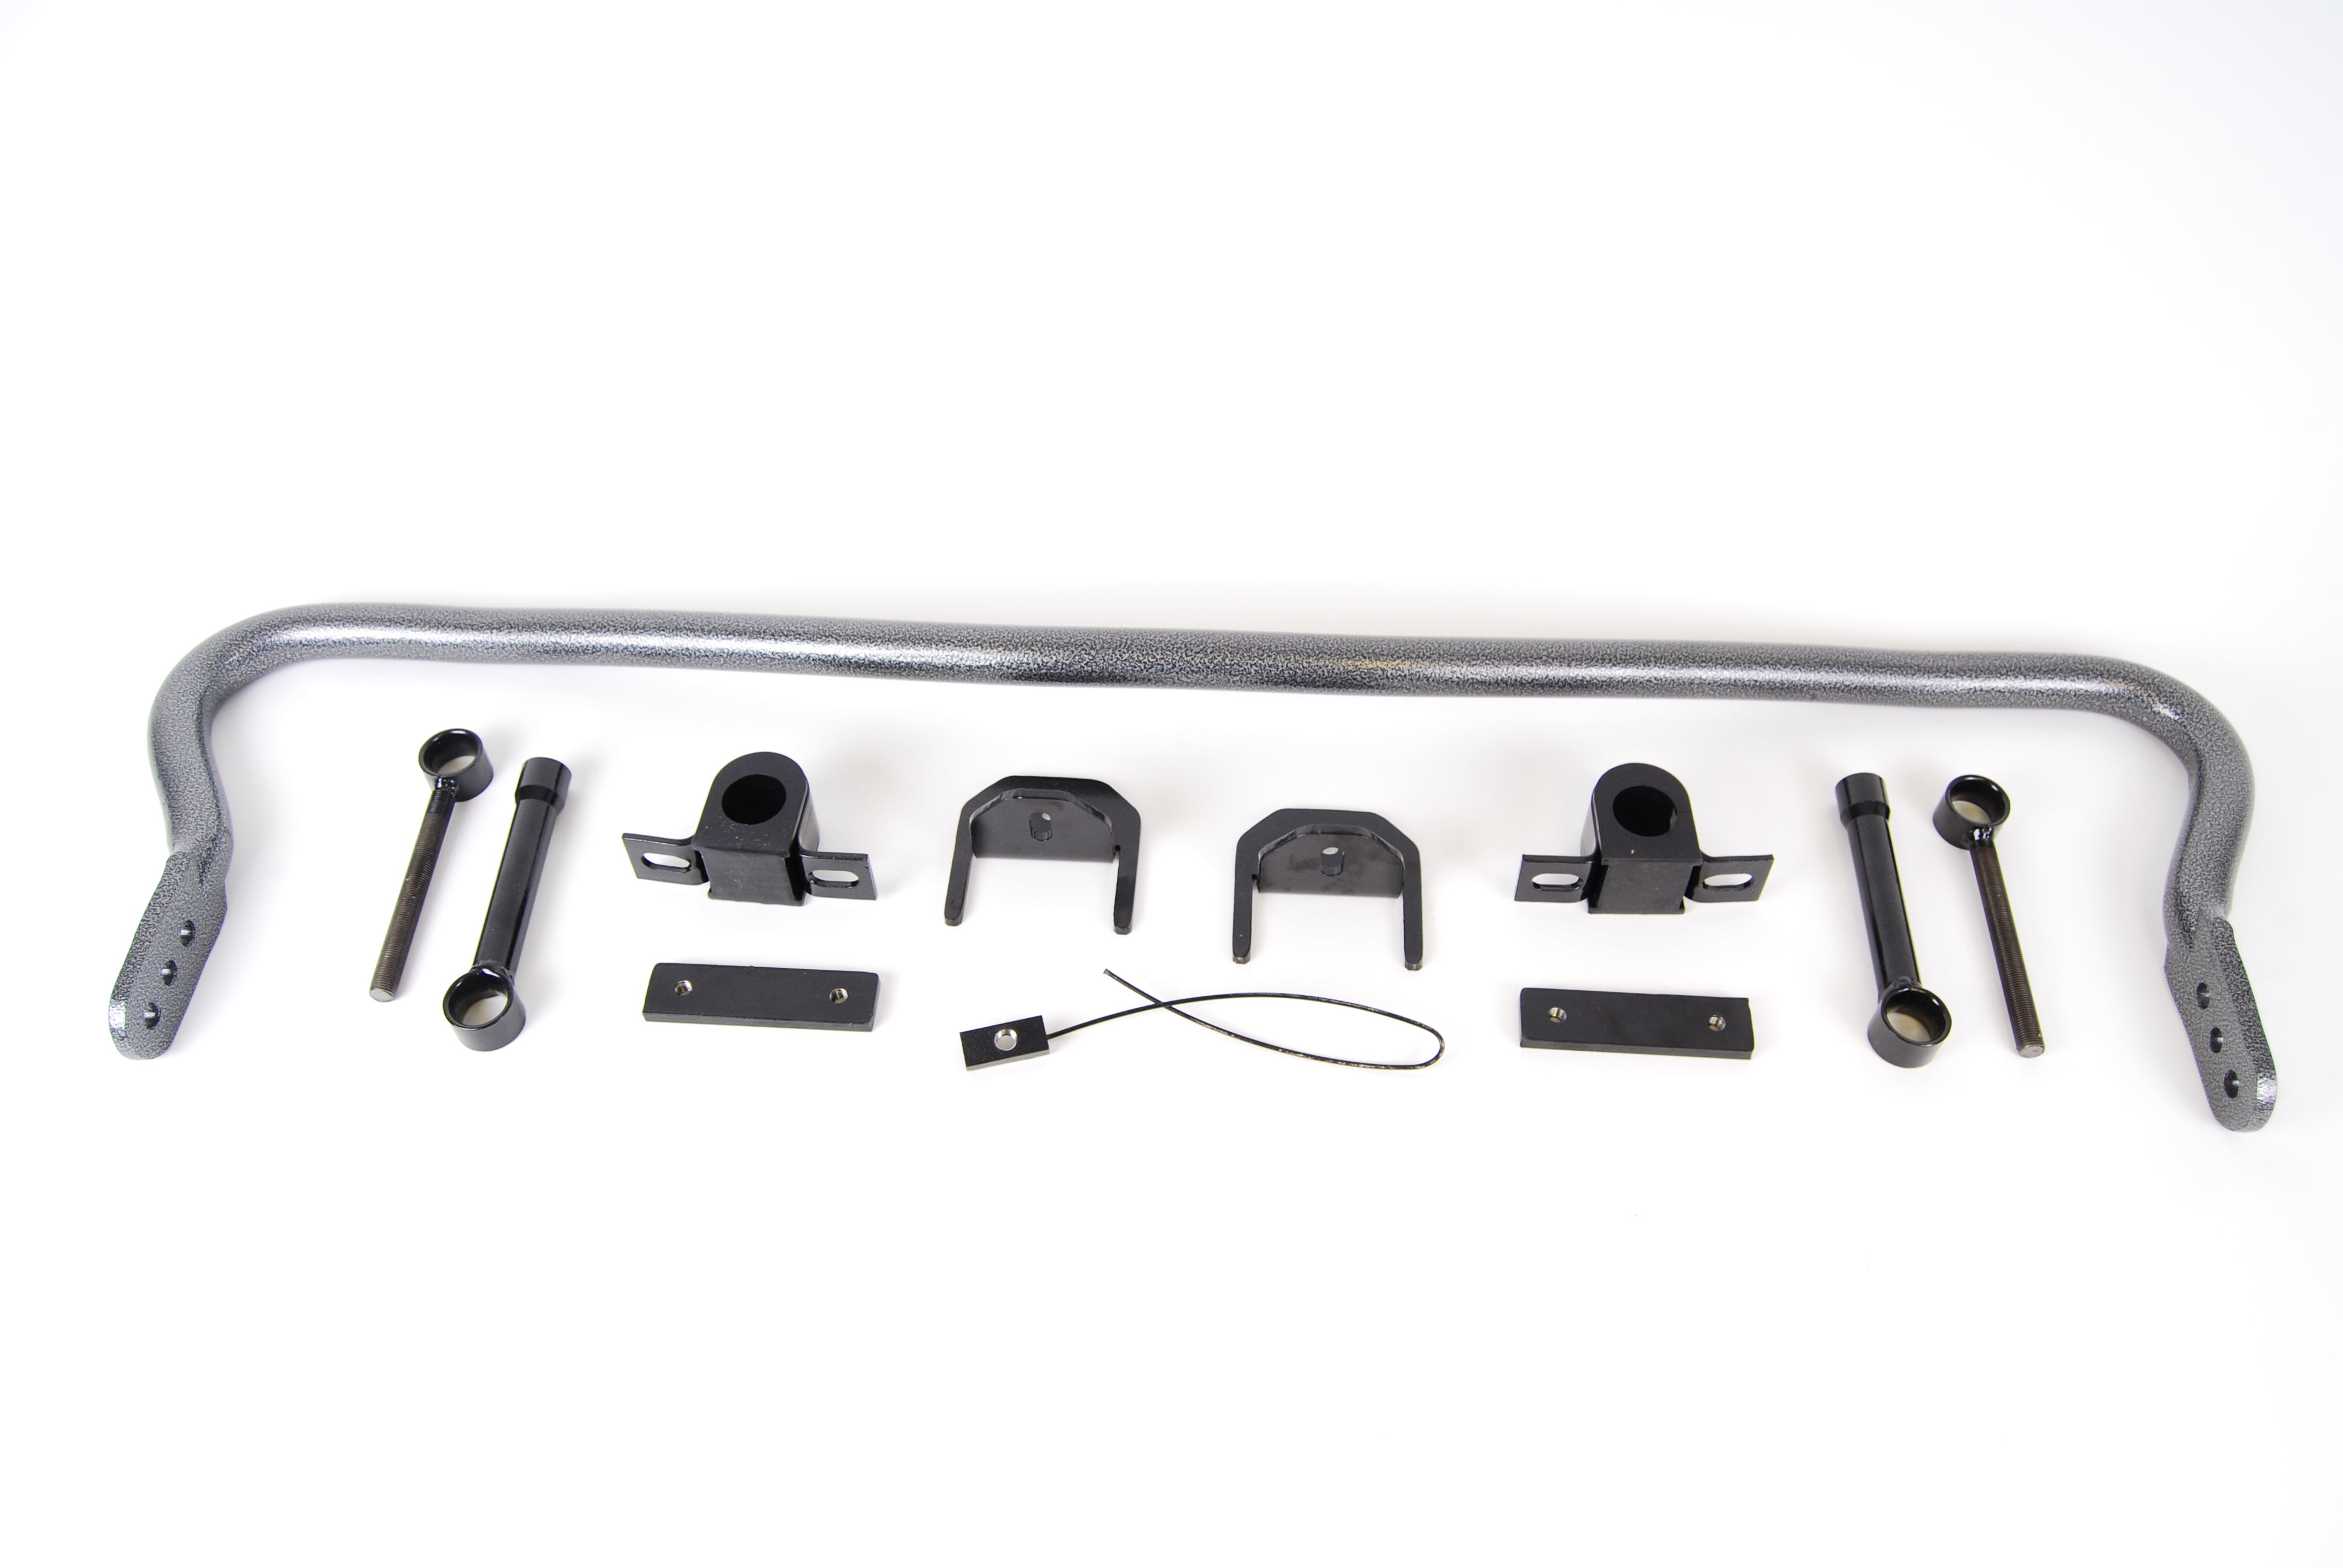 7760 Hellwig Stabilizer Bar For Everyday Driving And Heavy Tow/Haul  Application Use